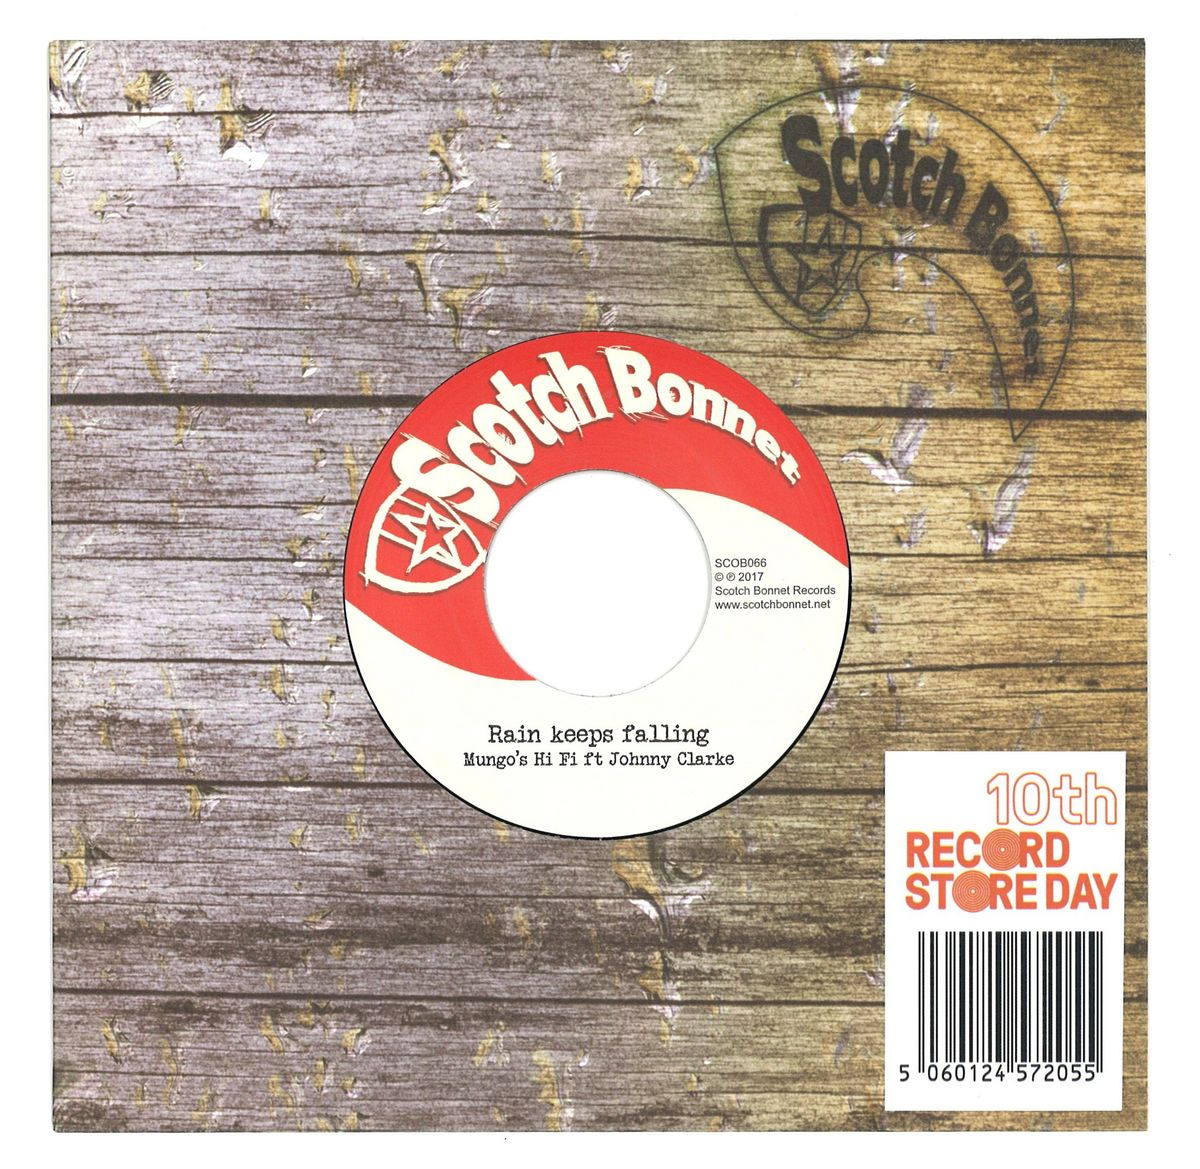 deejay de - Scotch Bonnet